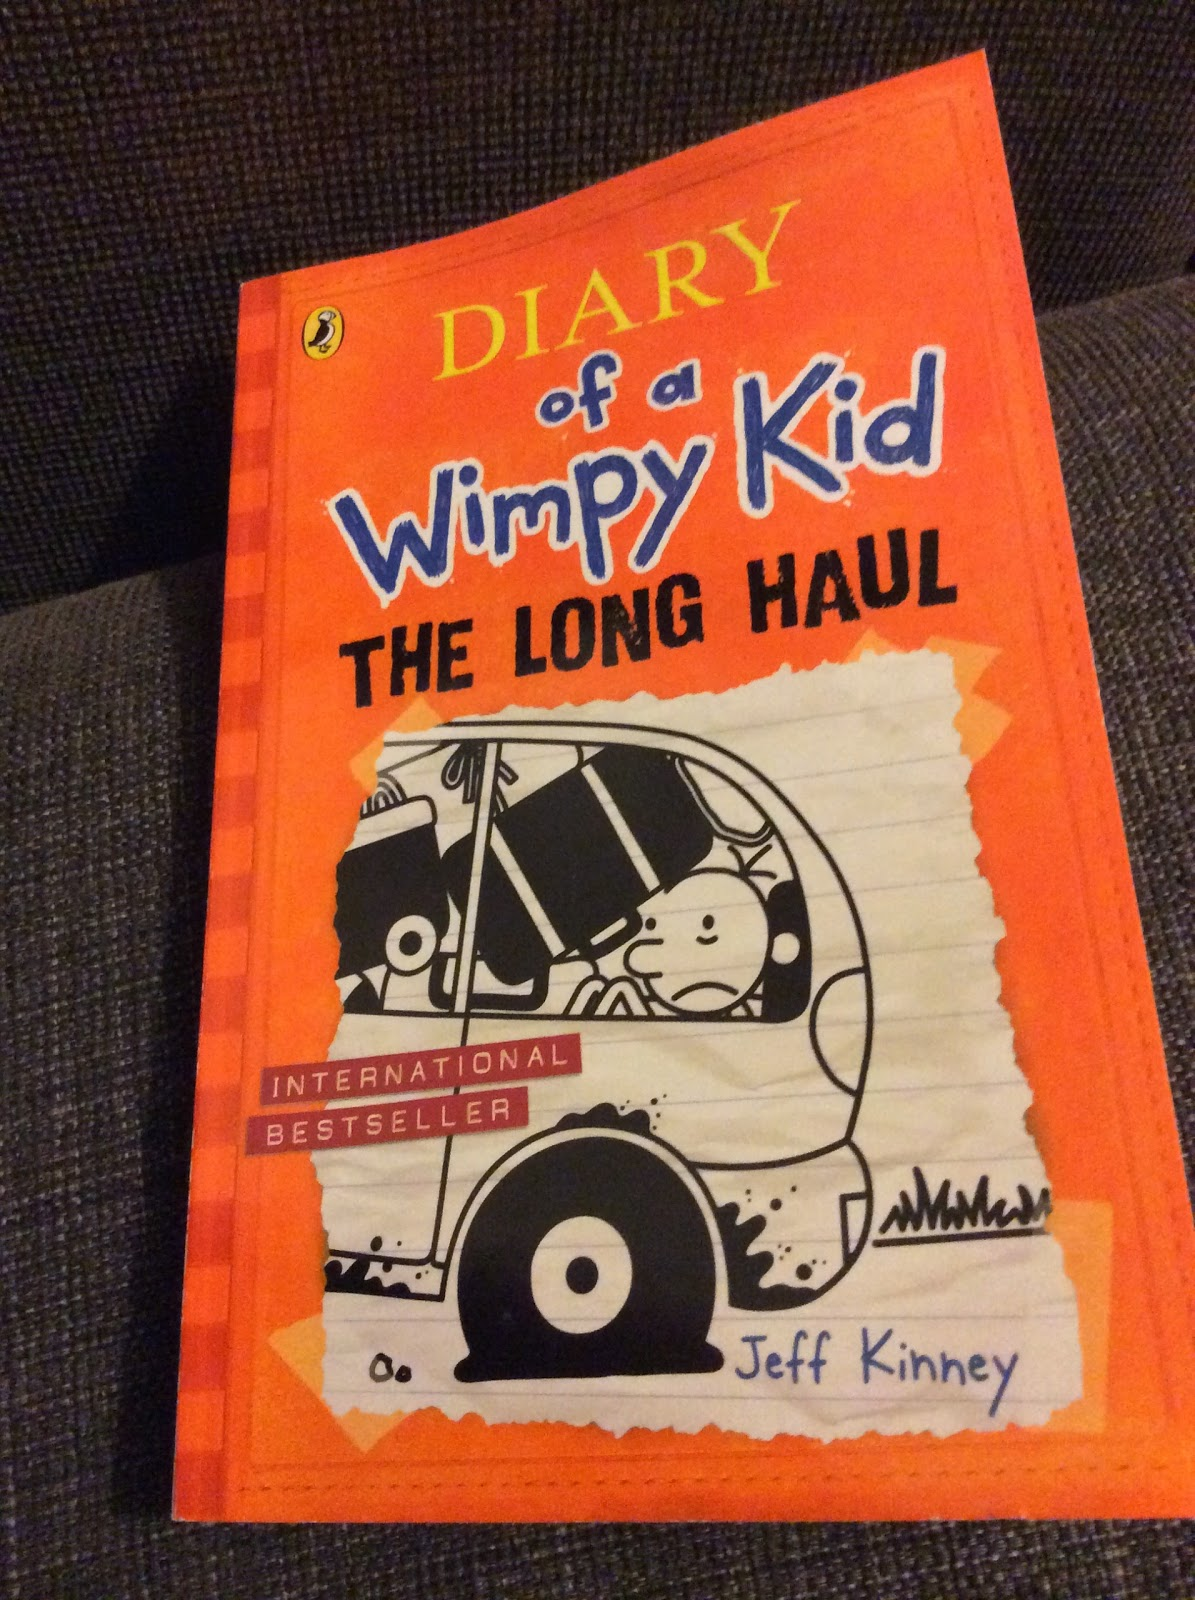 What fred read reviews and celebration of books for young children diary of a wimpy kid the long haul solutioingenieria Images